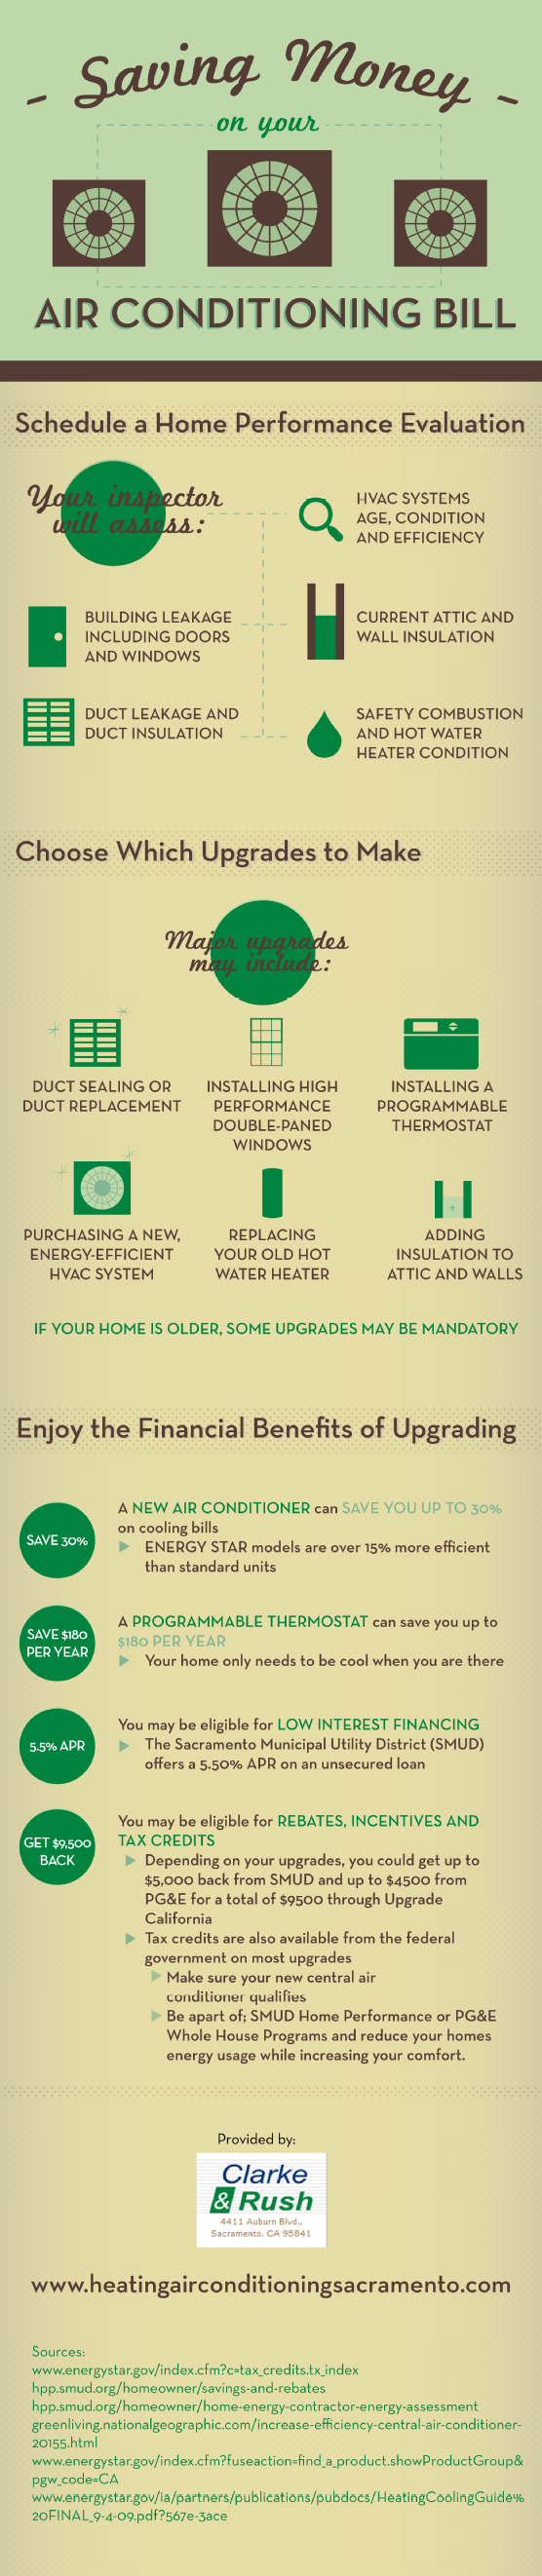 Saving Money On Your Air Conditioning Bill The First Tip